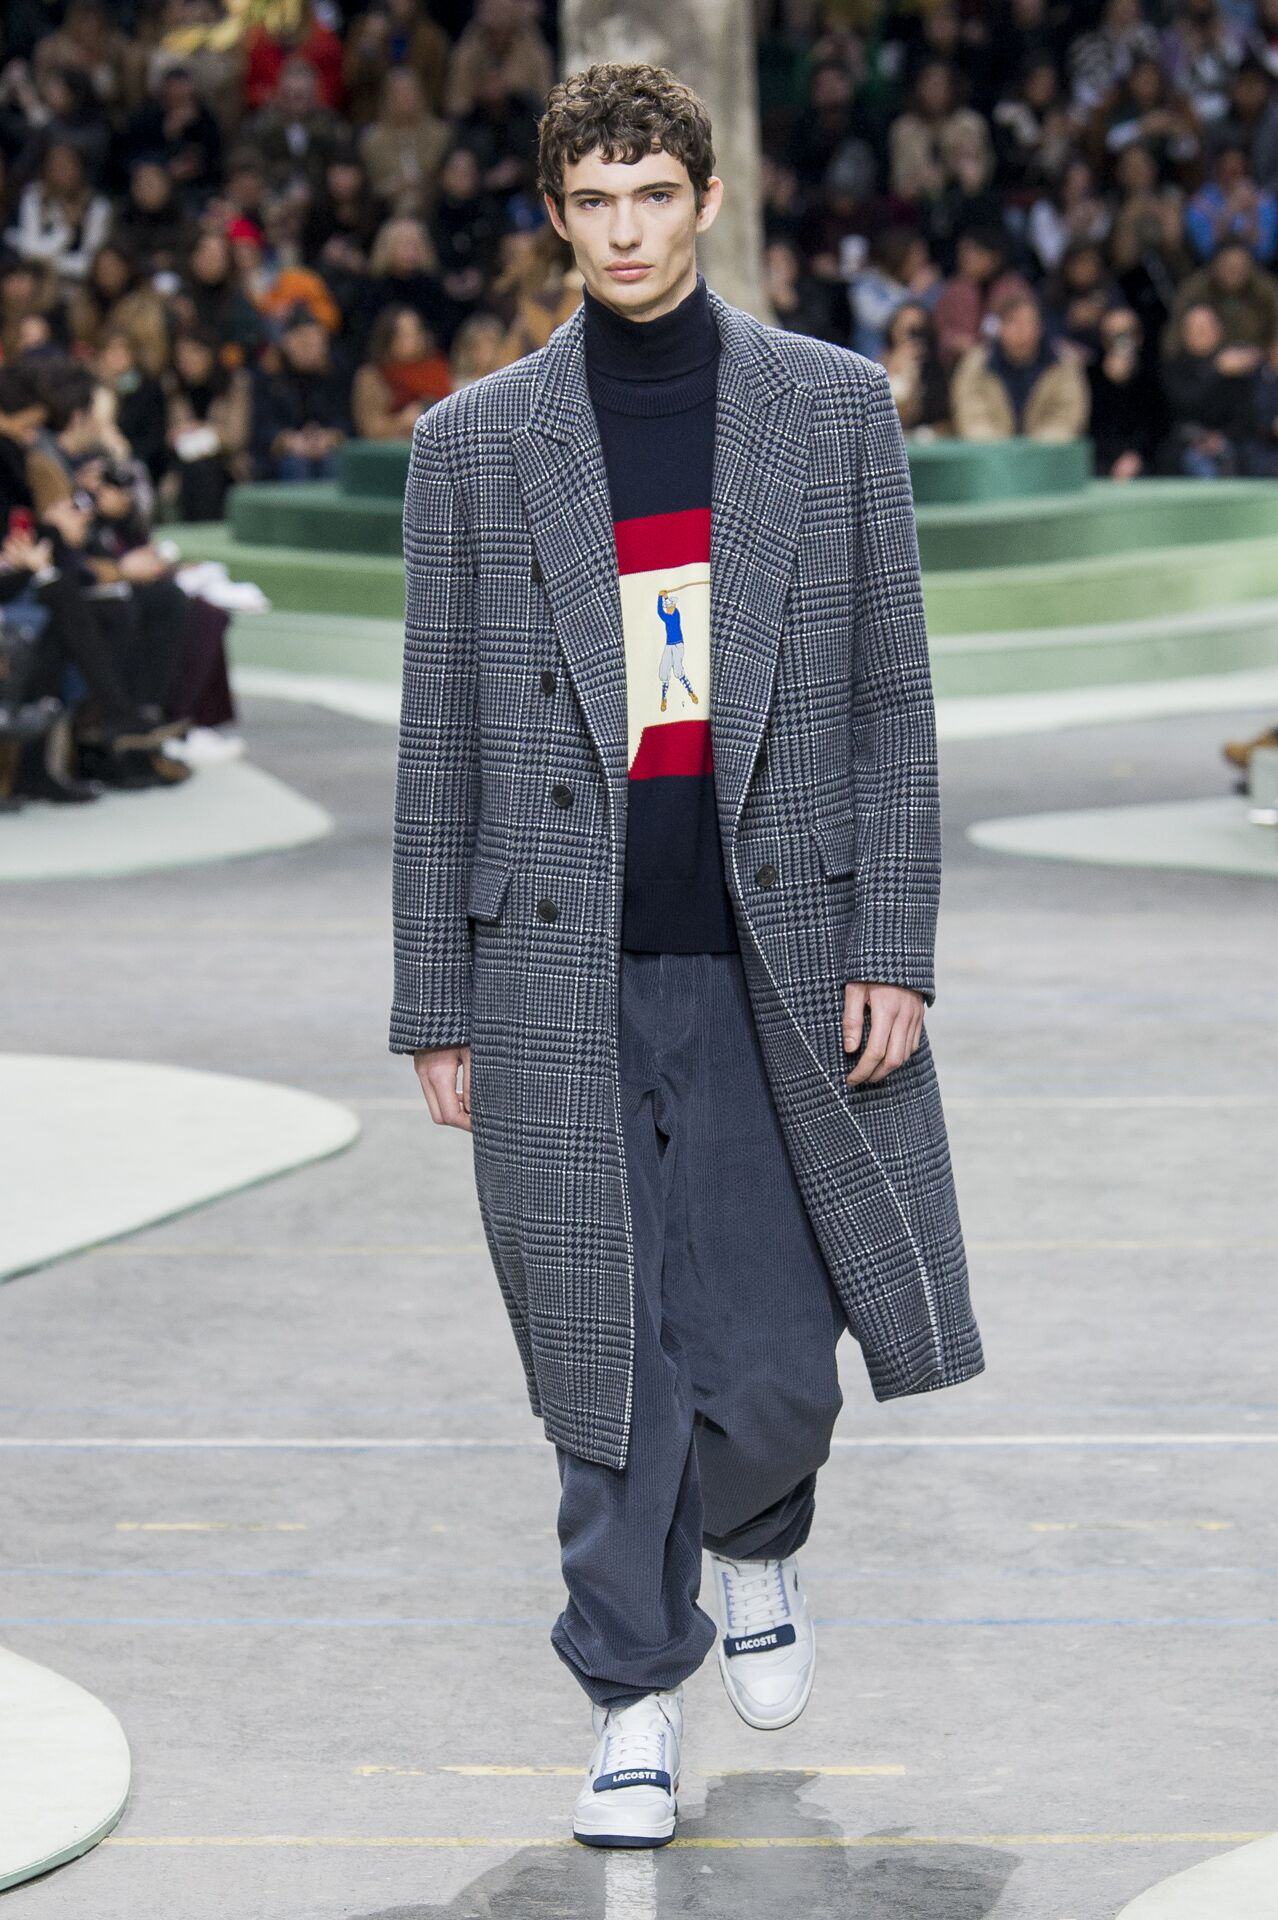 2018 Lacoste Man Winter Runway